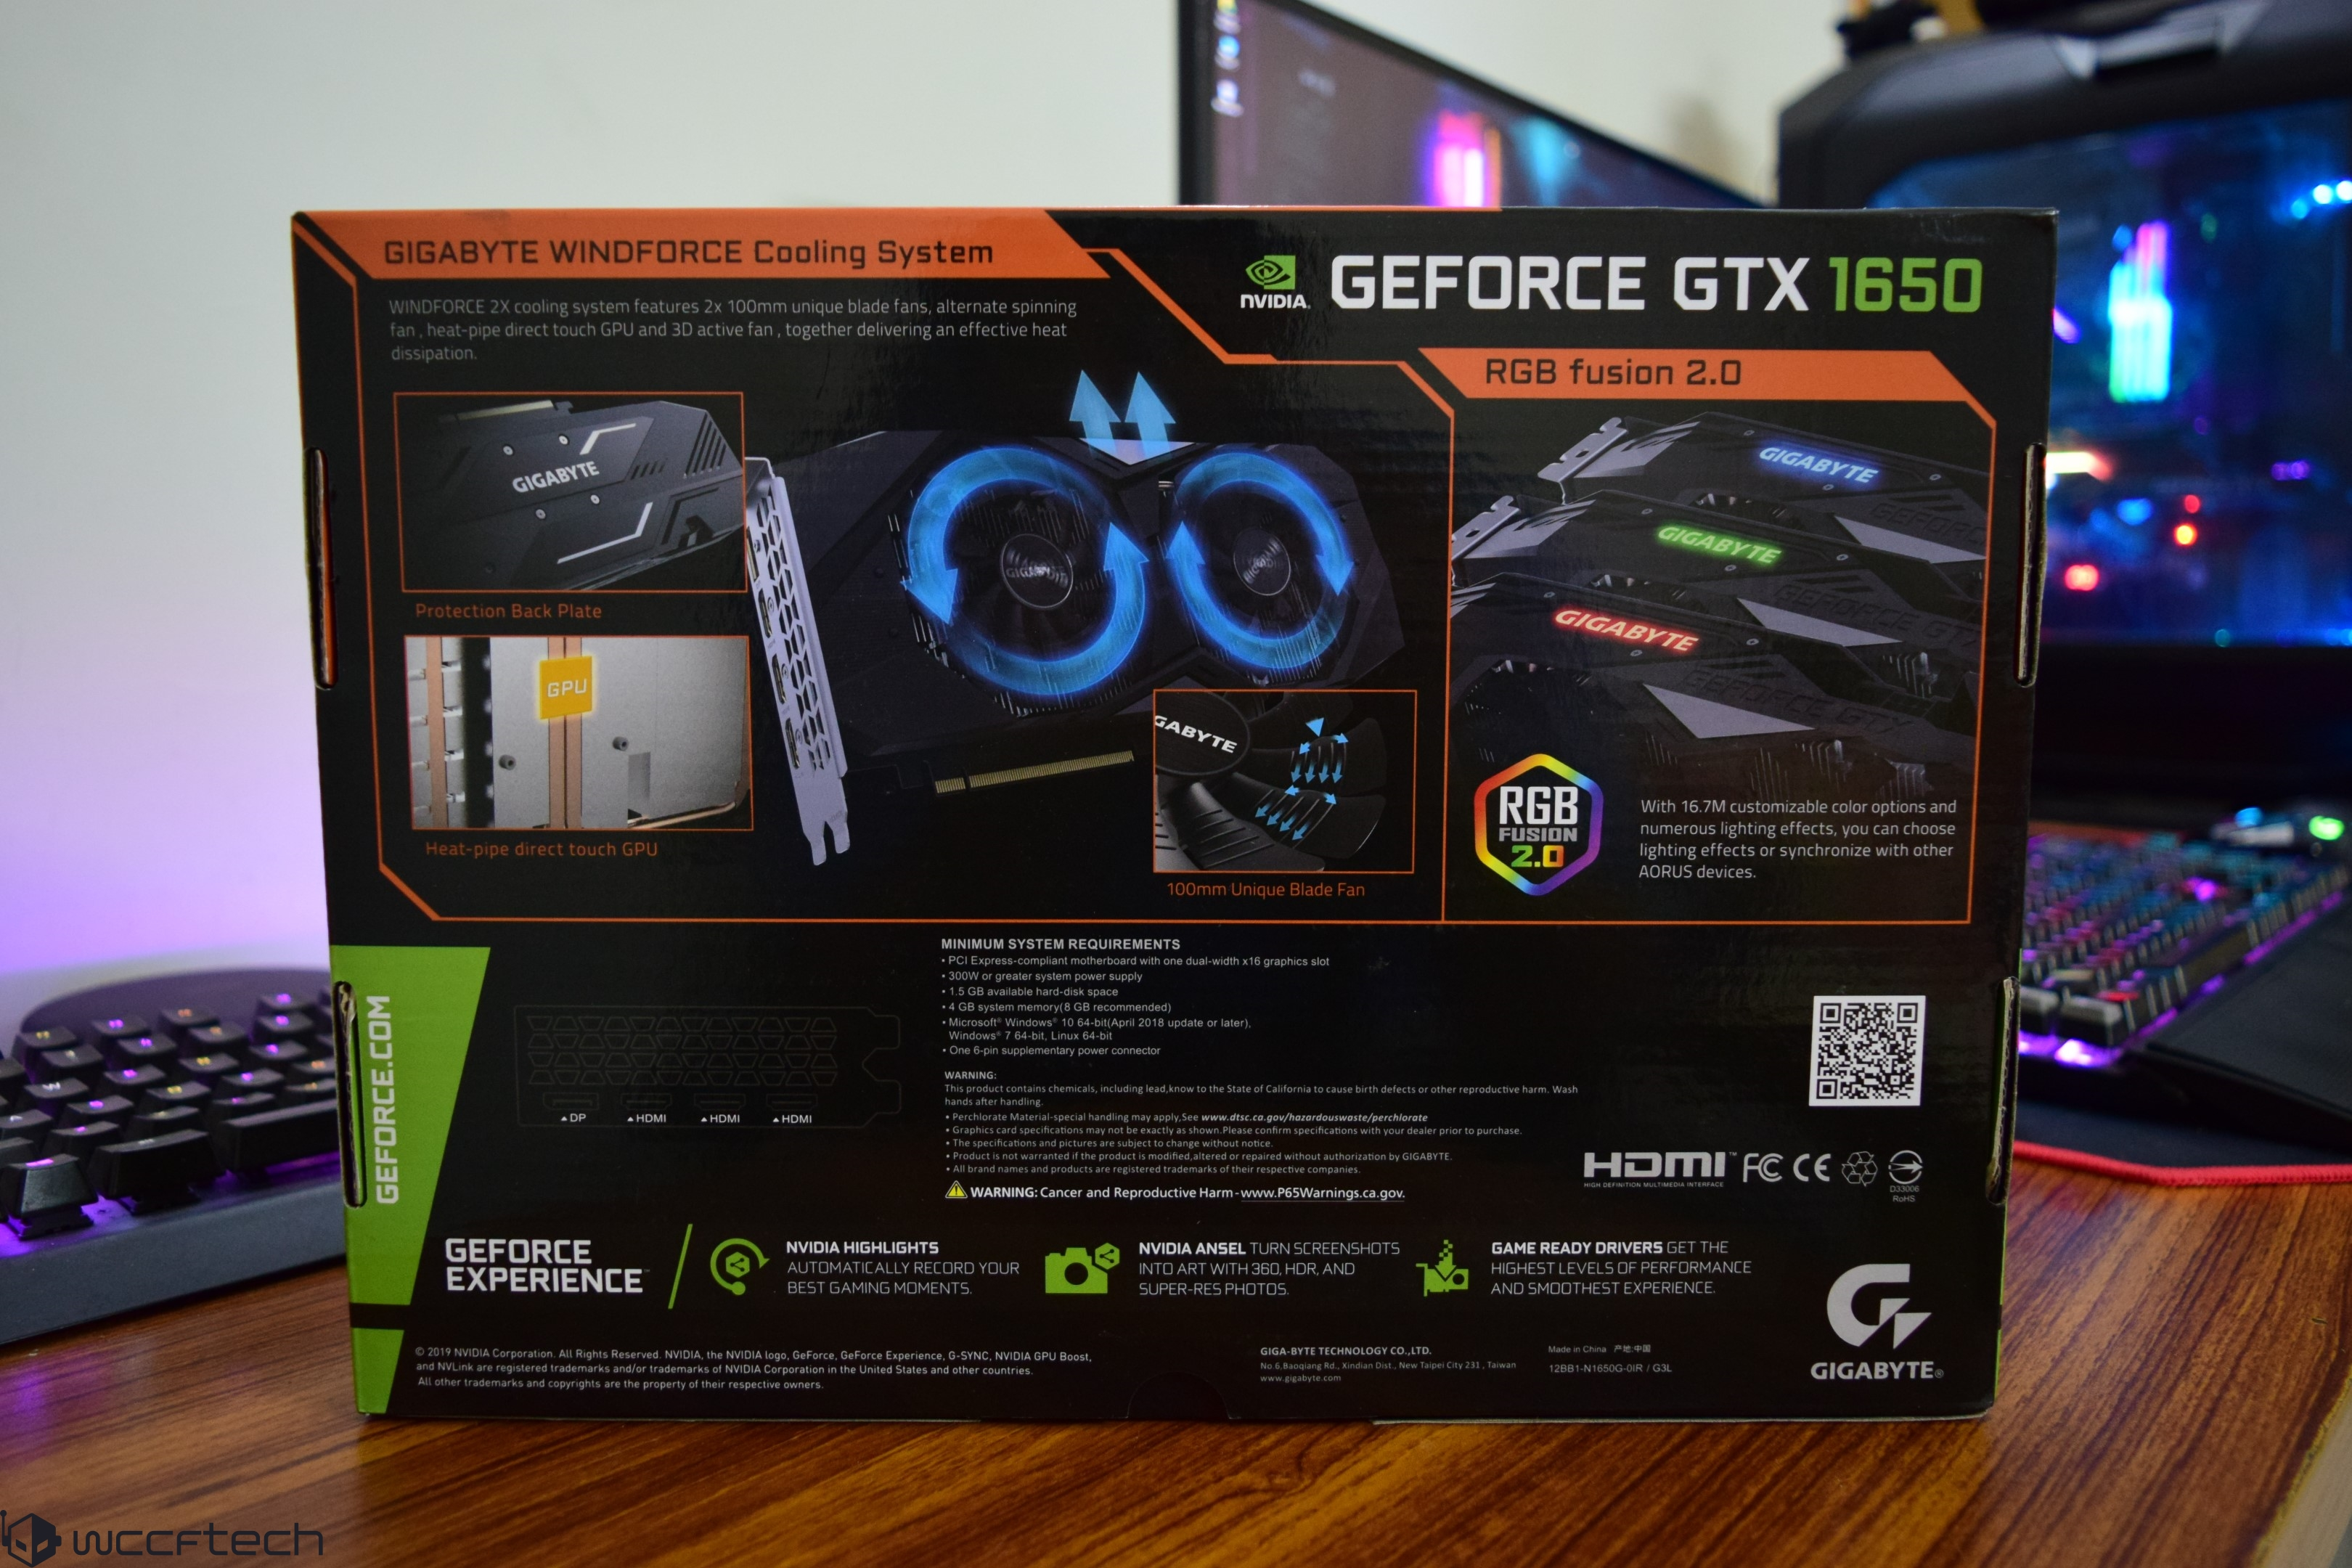 NVIDIA GeForce GTX 1650 4 GB GDDR5 Graphics Card Review Ft